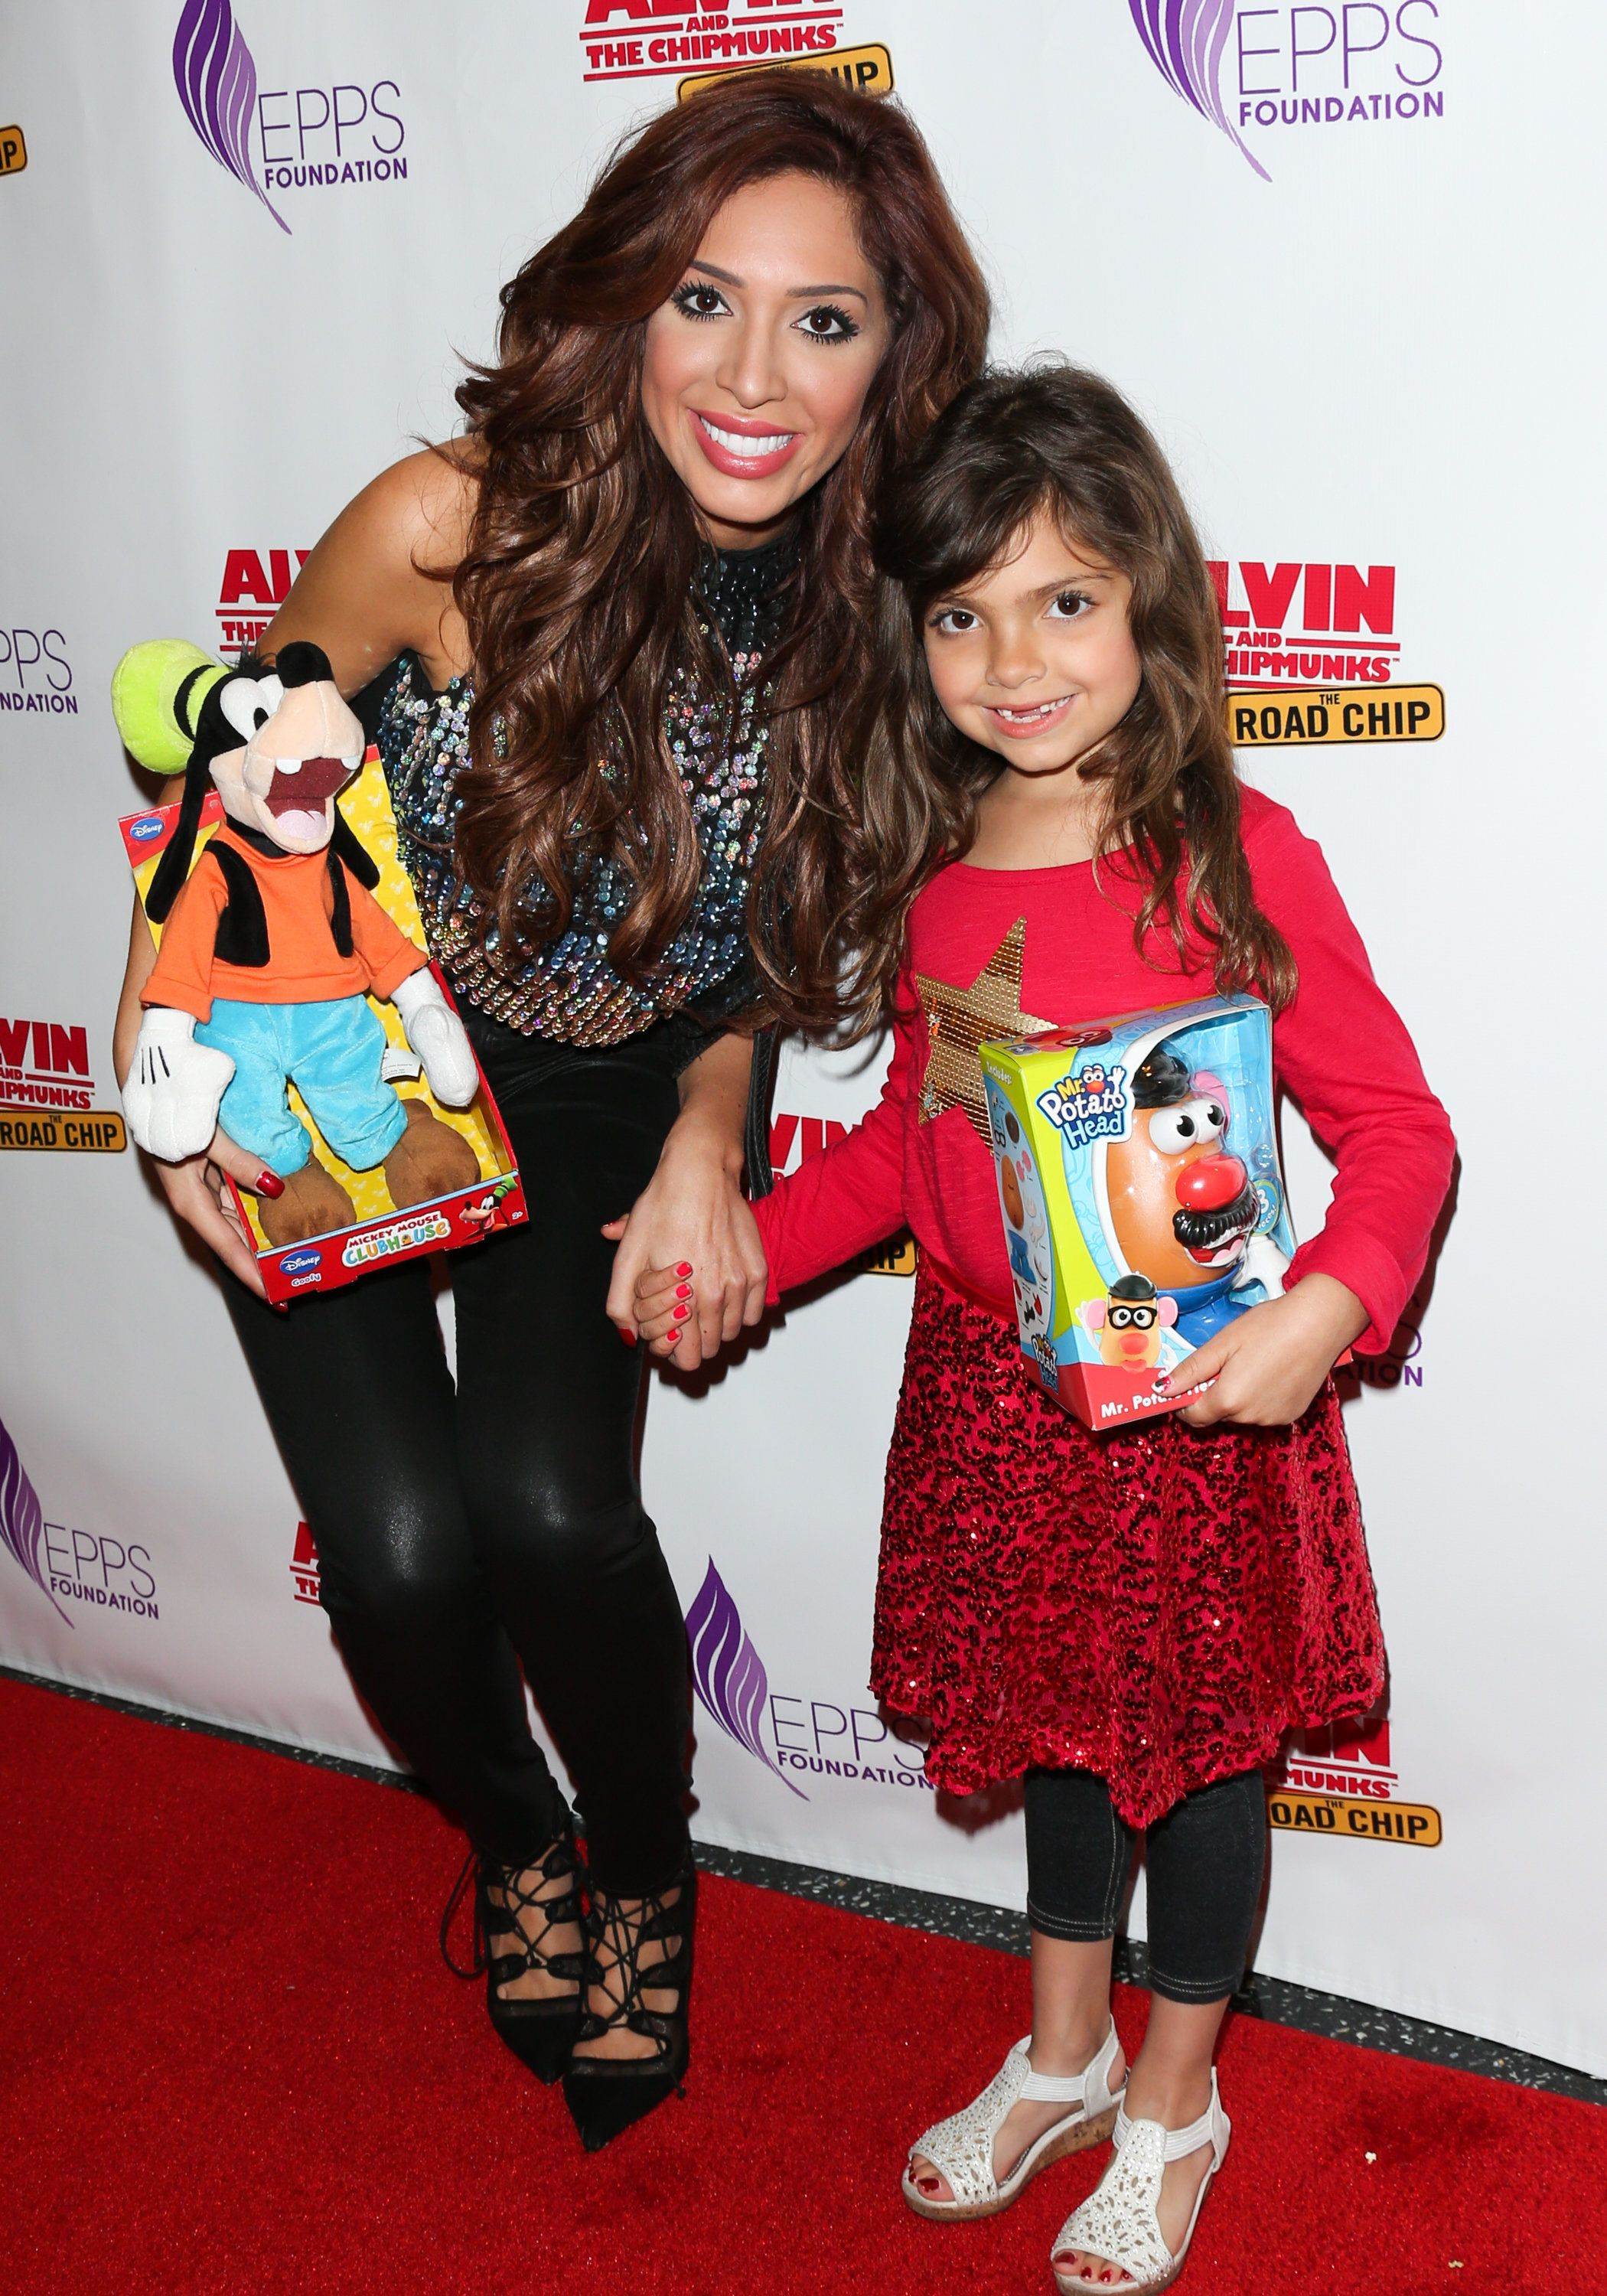 CENTURY CITY, CA - DECEMBER 13:  Reality TV Personality Farrah Abraham (L) and her Daughter Sophia Laurent Abraham (R) attend the celebrity family Sunday funday toy drive and screening of 'Alvin And The Chipmunks: The Road Chip' at AMC Century City 15 theater on December 13, 2015 in Century City, California.  (Photo by Paul Archuleta/Getty Images)